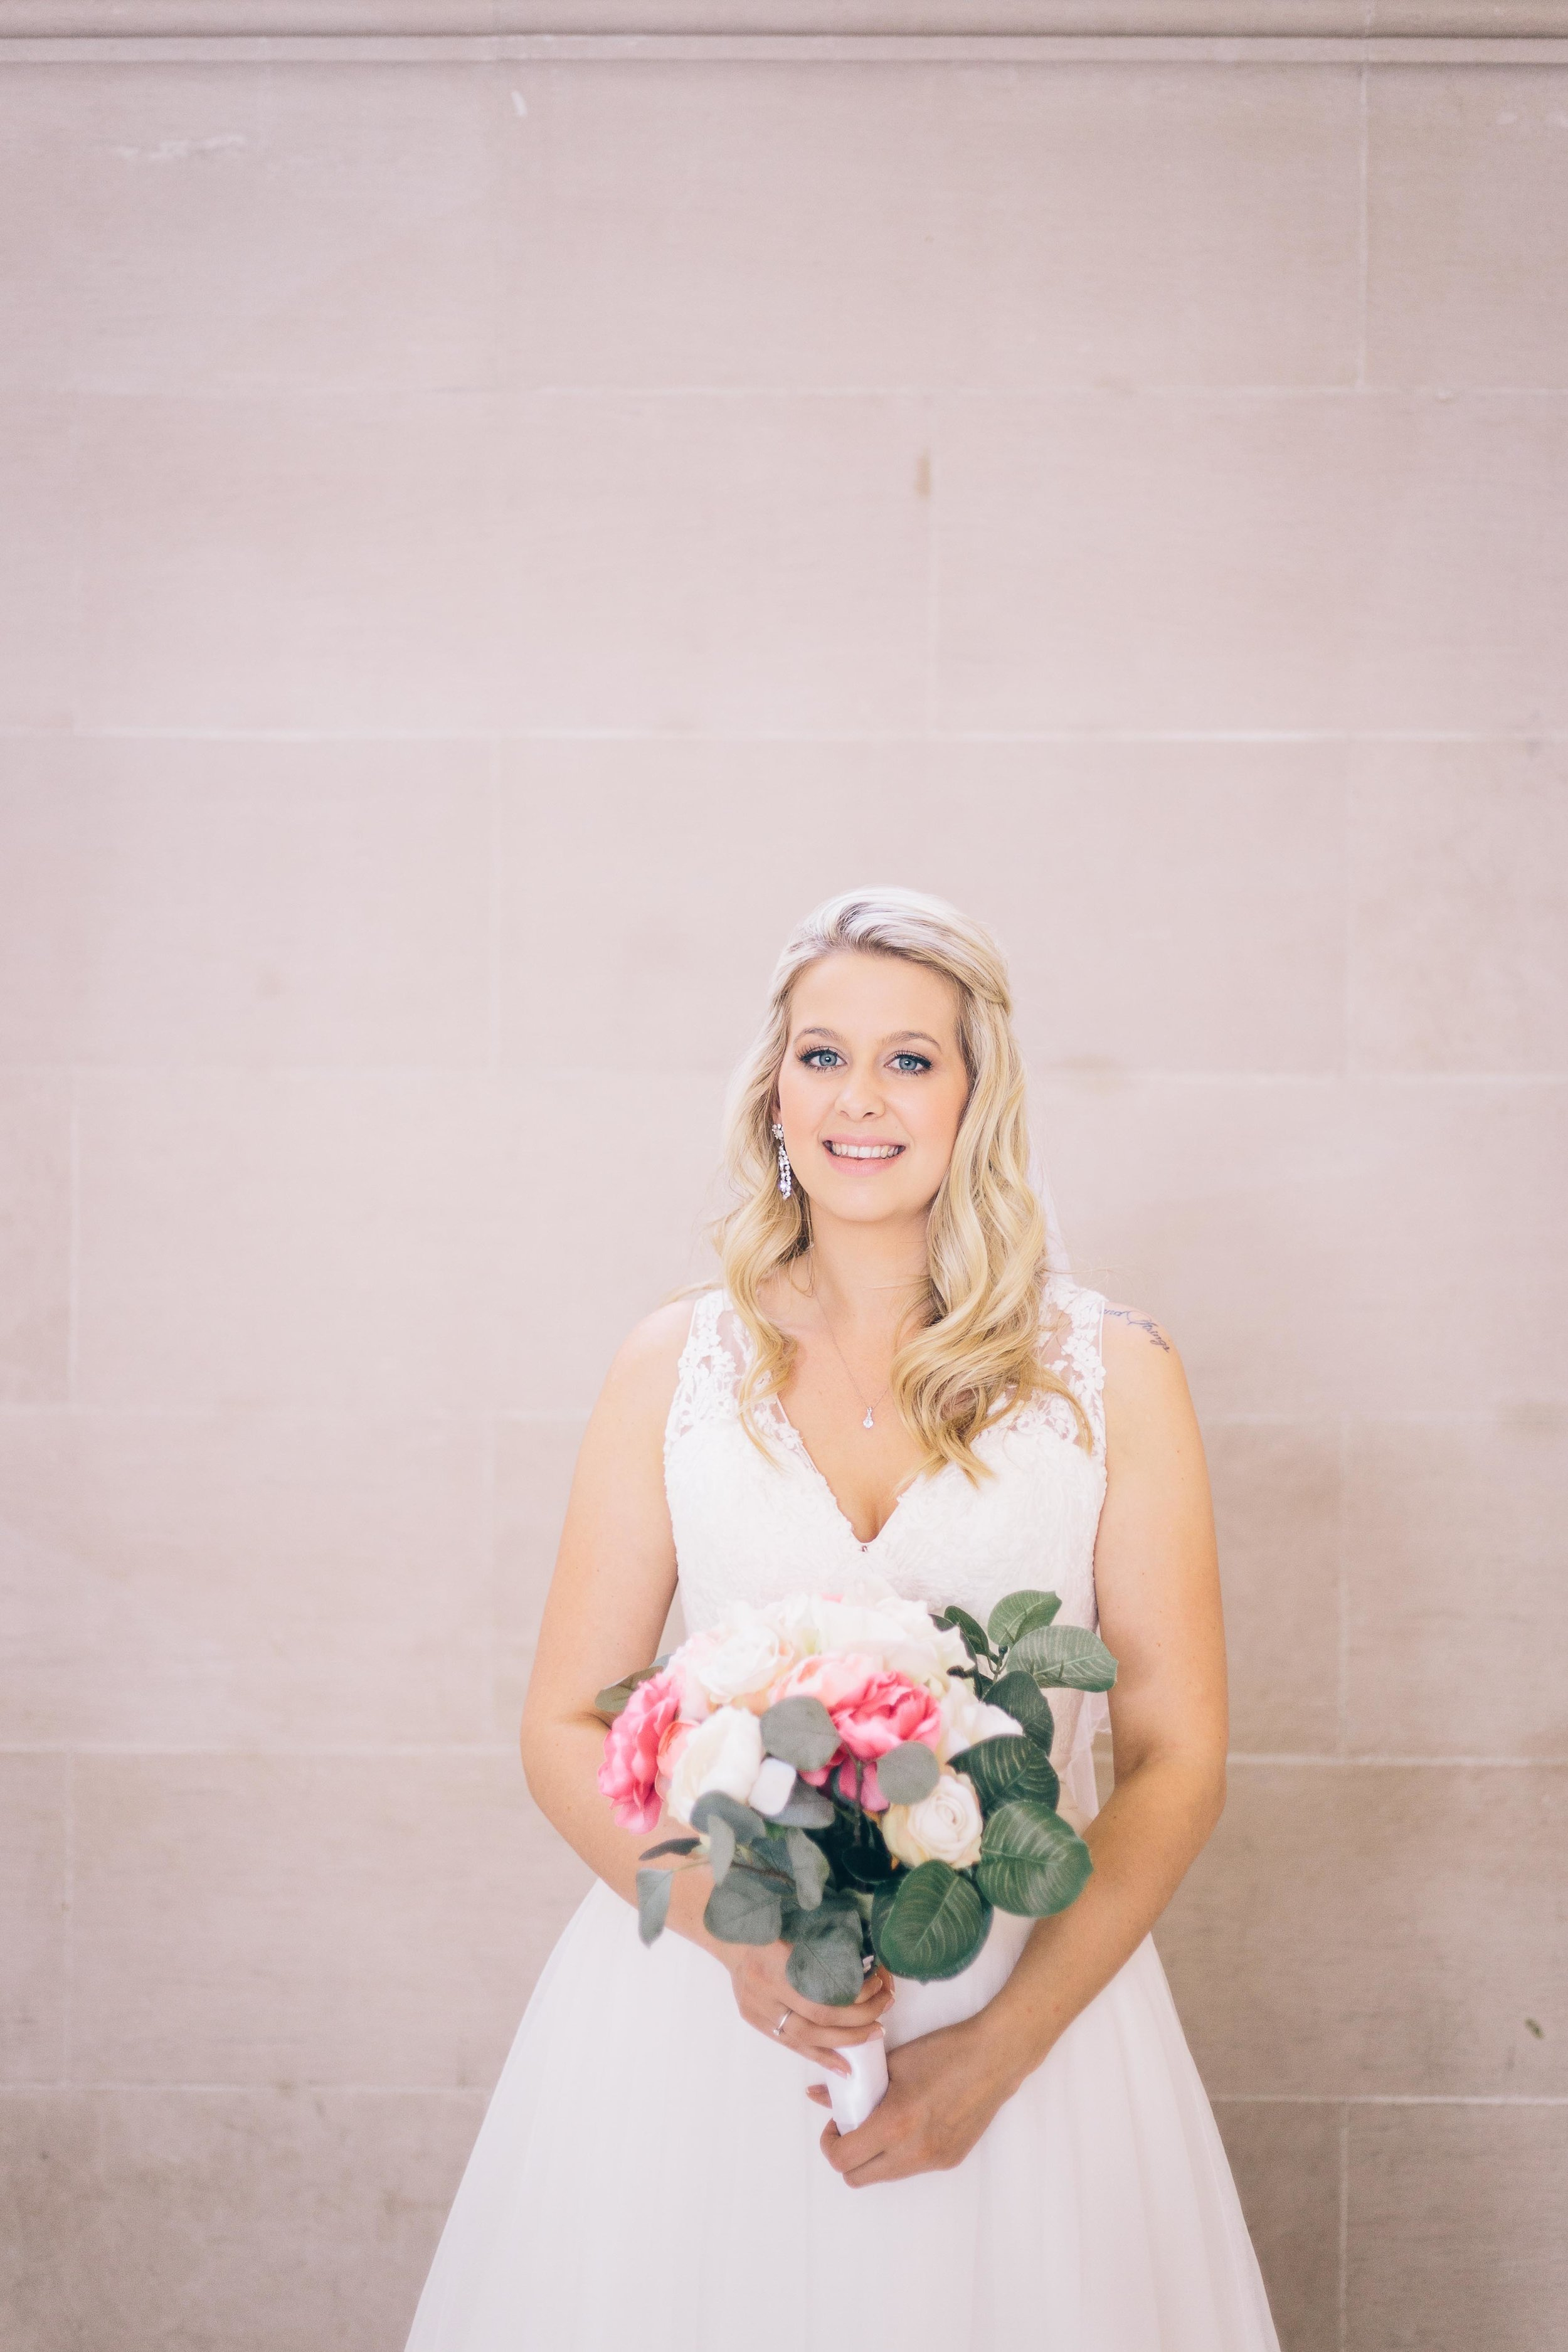 Pre-Wedding Bridal Portraits in San Francisco, Napa and Sonoma by JBJ Pictures Engagement and Wedding Photographer (5).jpg